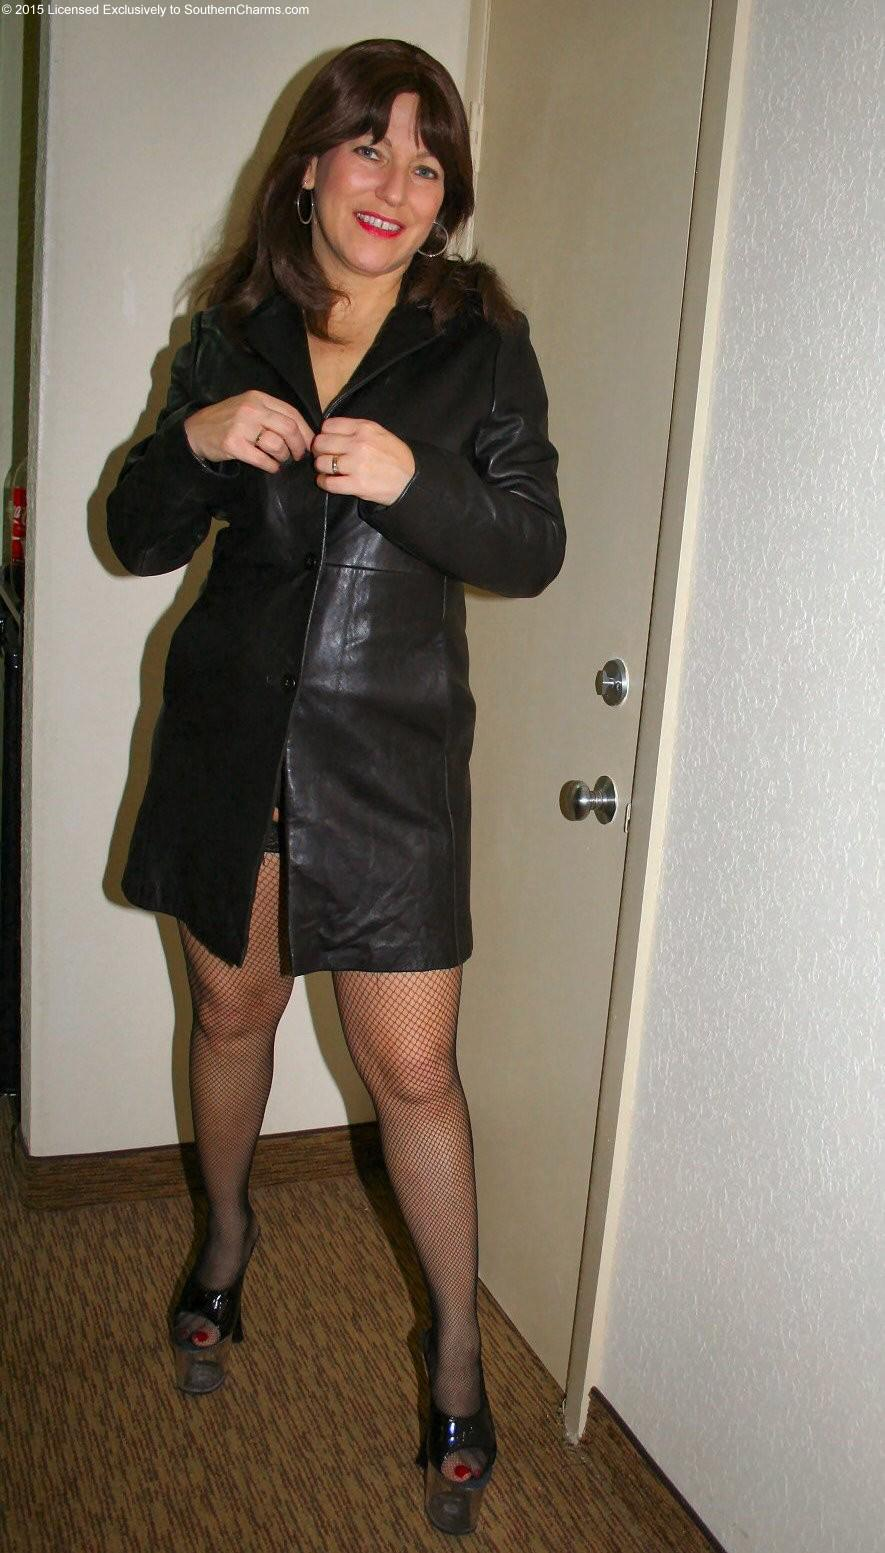 Wish milf flashing in leather coat she knows how